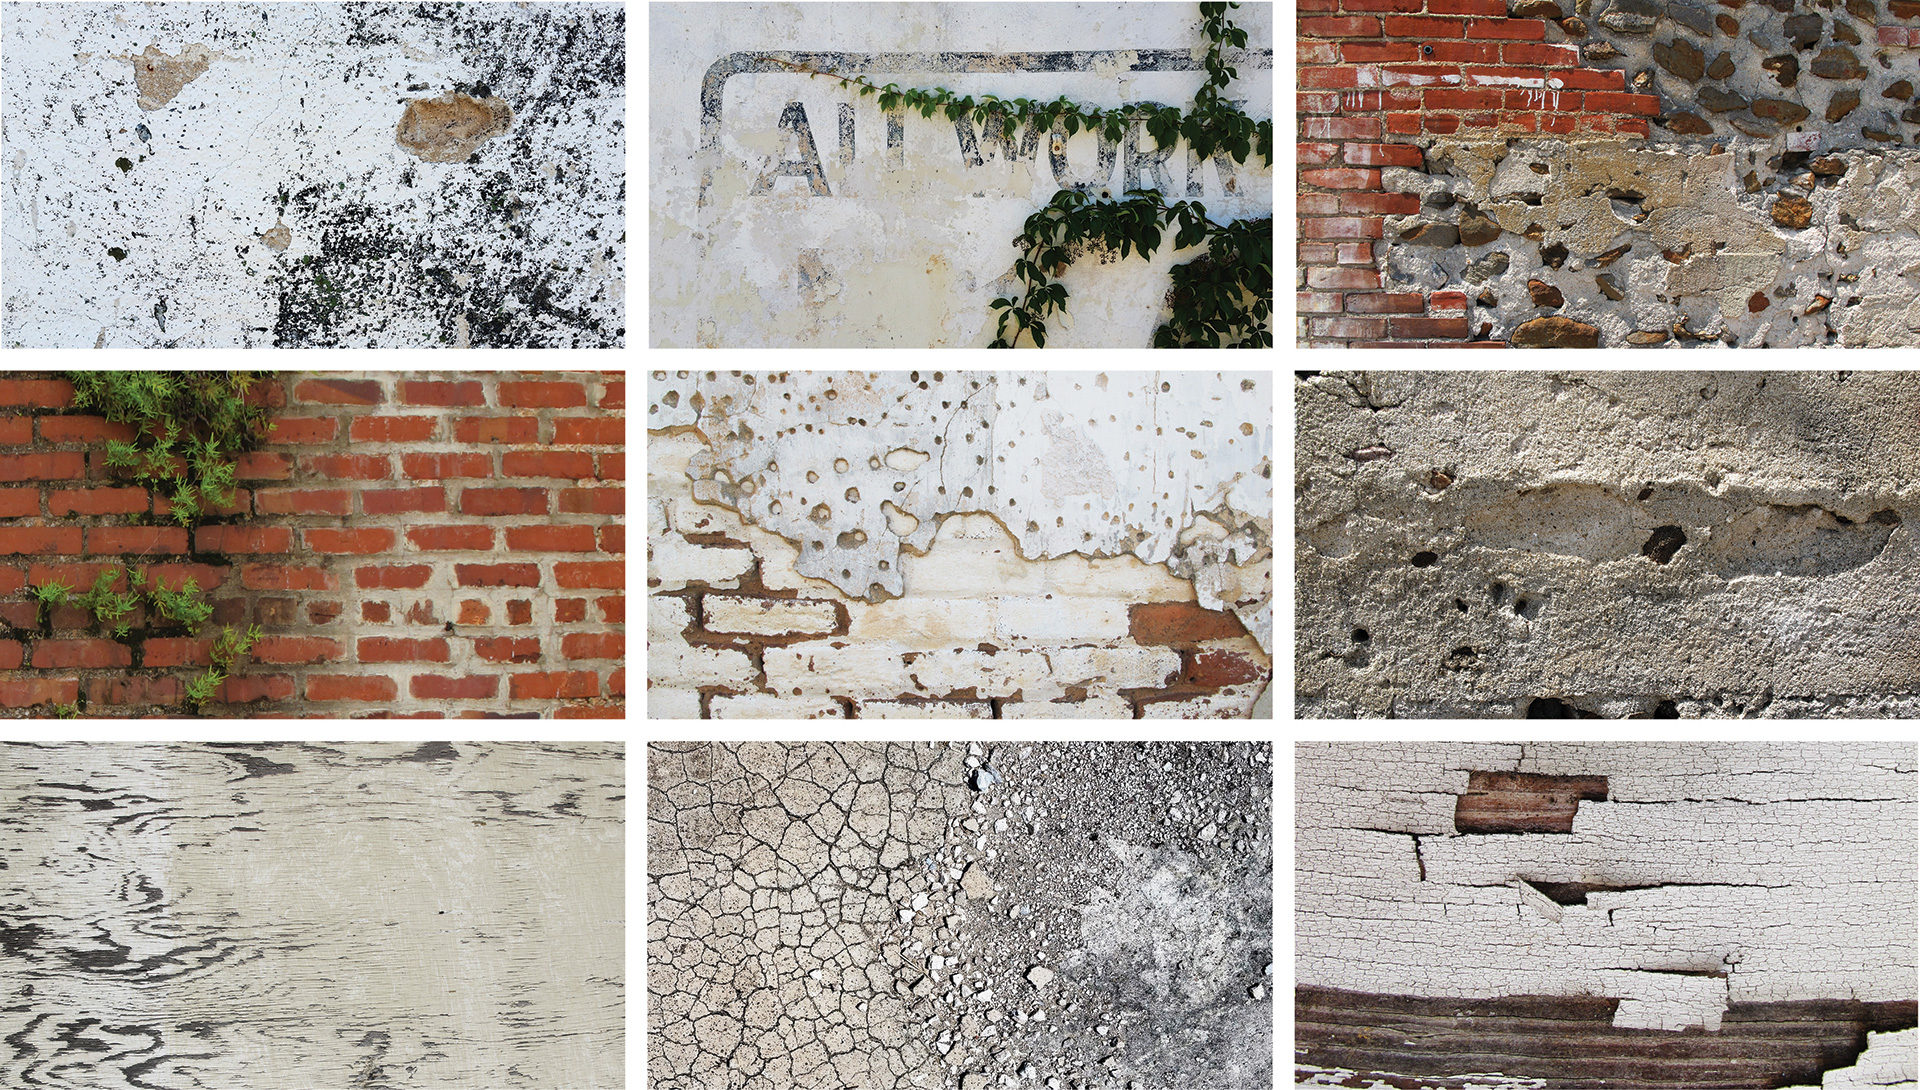 MATERIAL PALETTES: the cotton warehouse district is characterized by the rich patina of materials and strategic patchwork that results from decades of Southern resourcefulness.